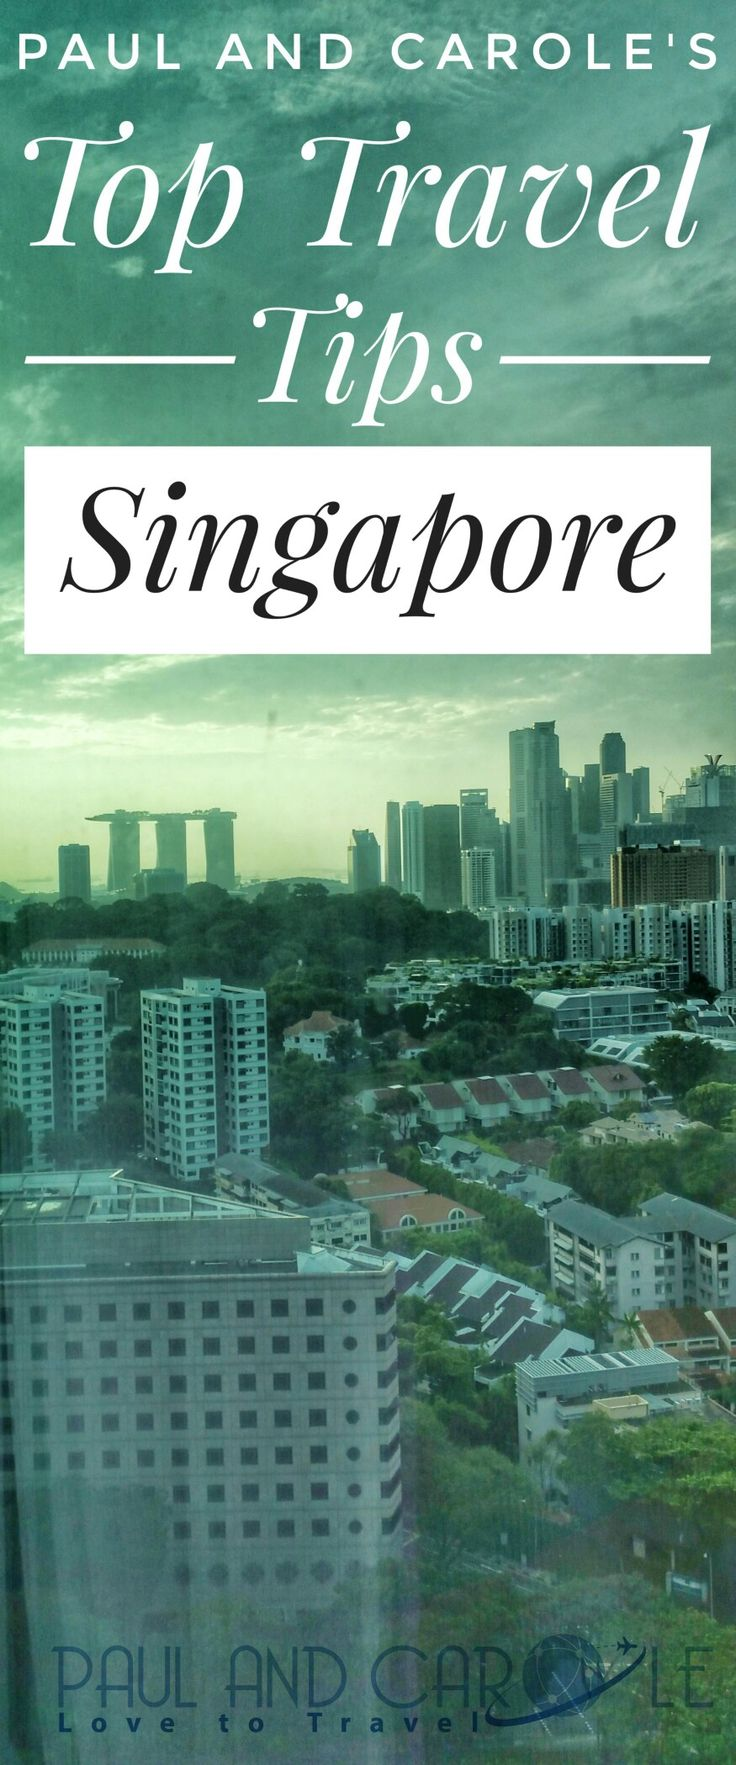 We have now visited Singapore 3 times and wouldn't hesitate to visit again. Here are our top travel tips Singapore for you to consider when planning a trip to this fascinating destination.